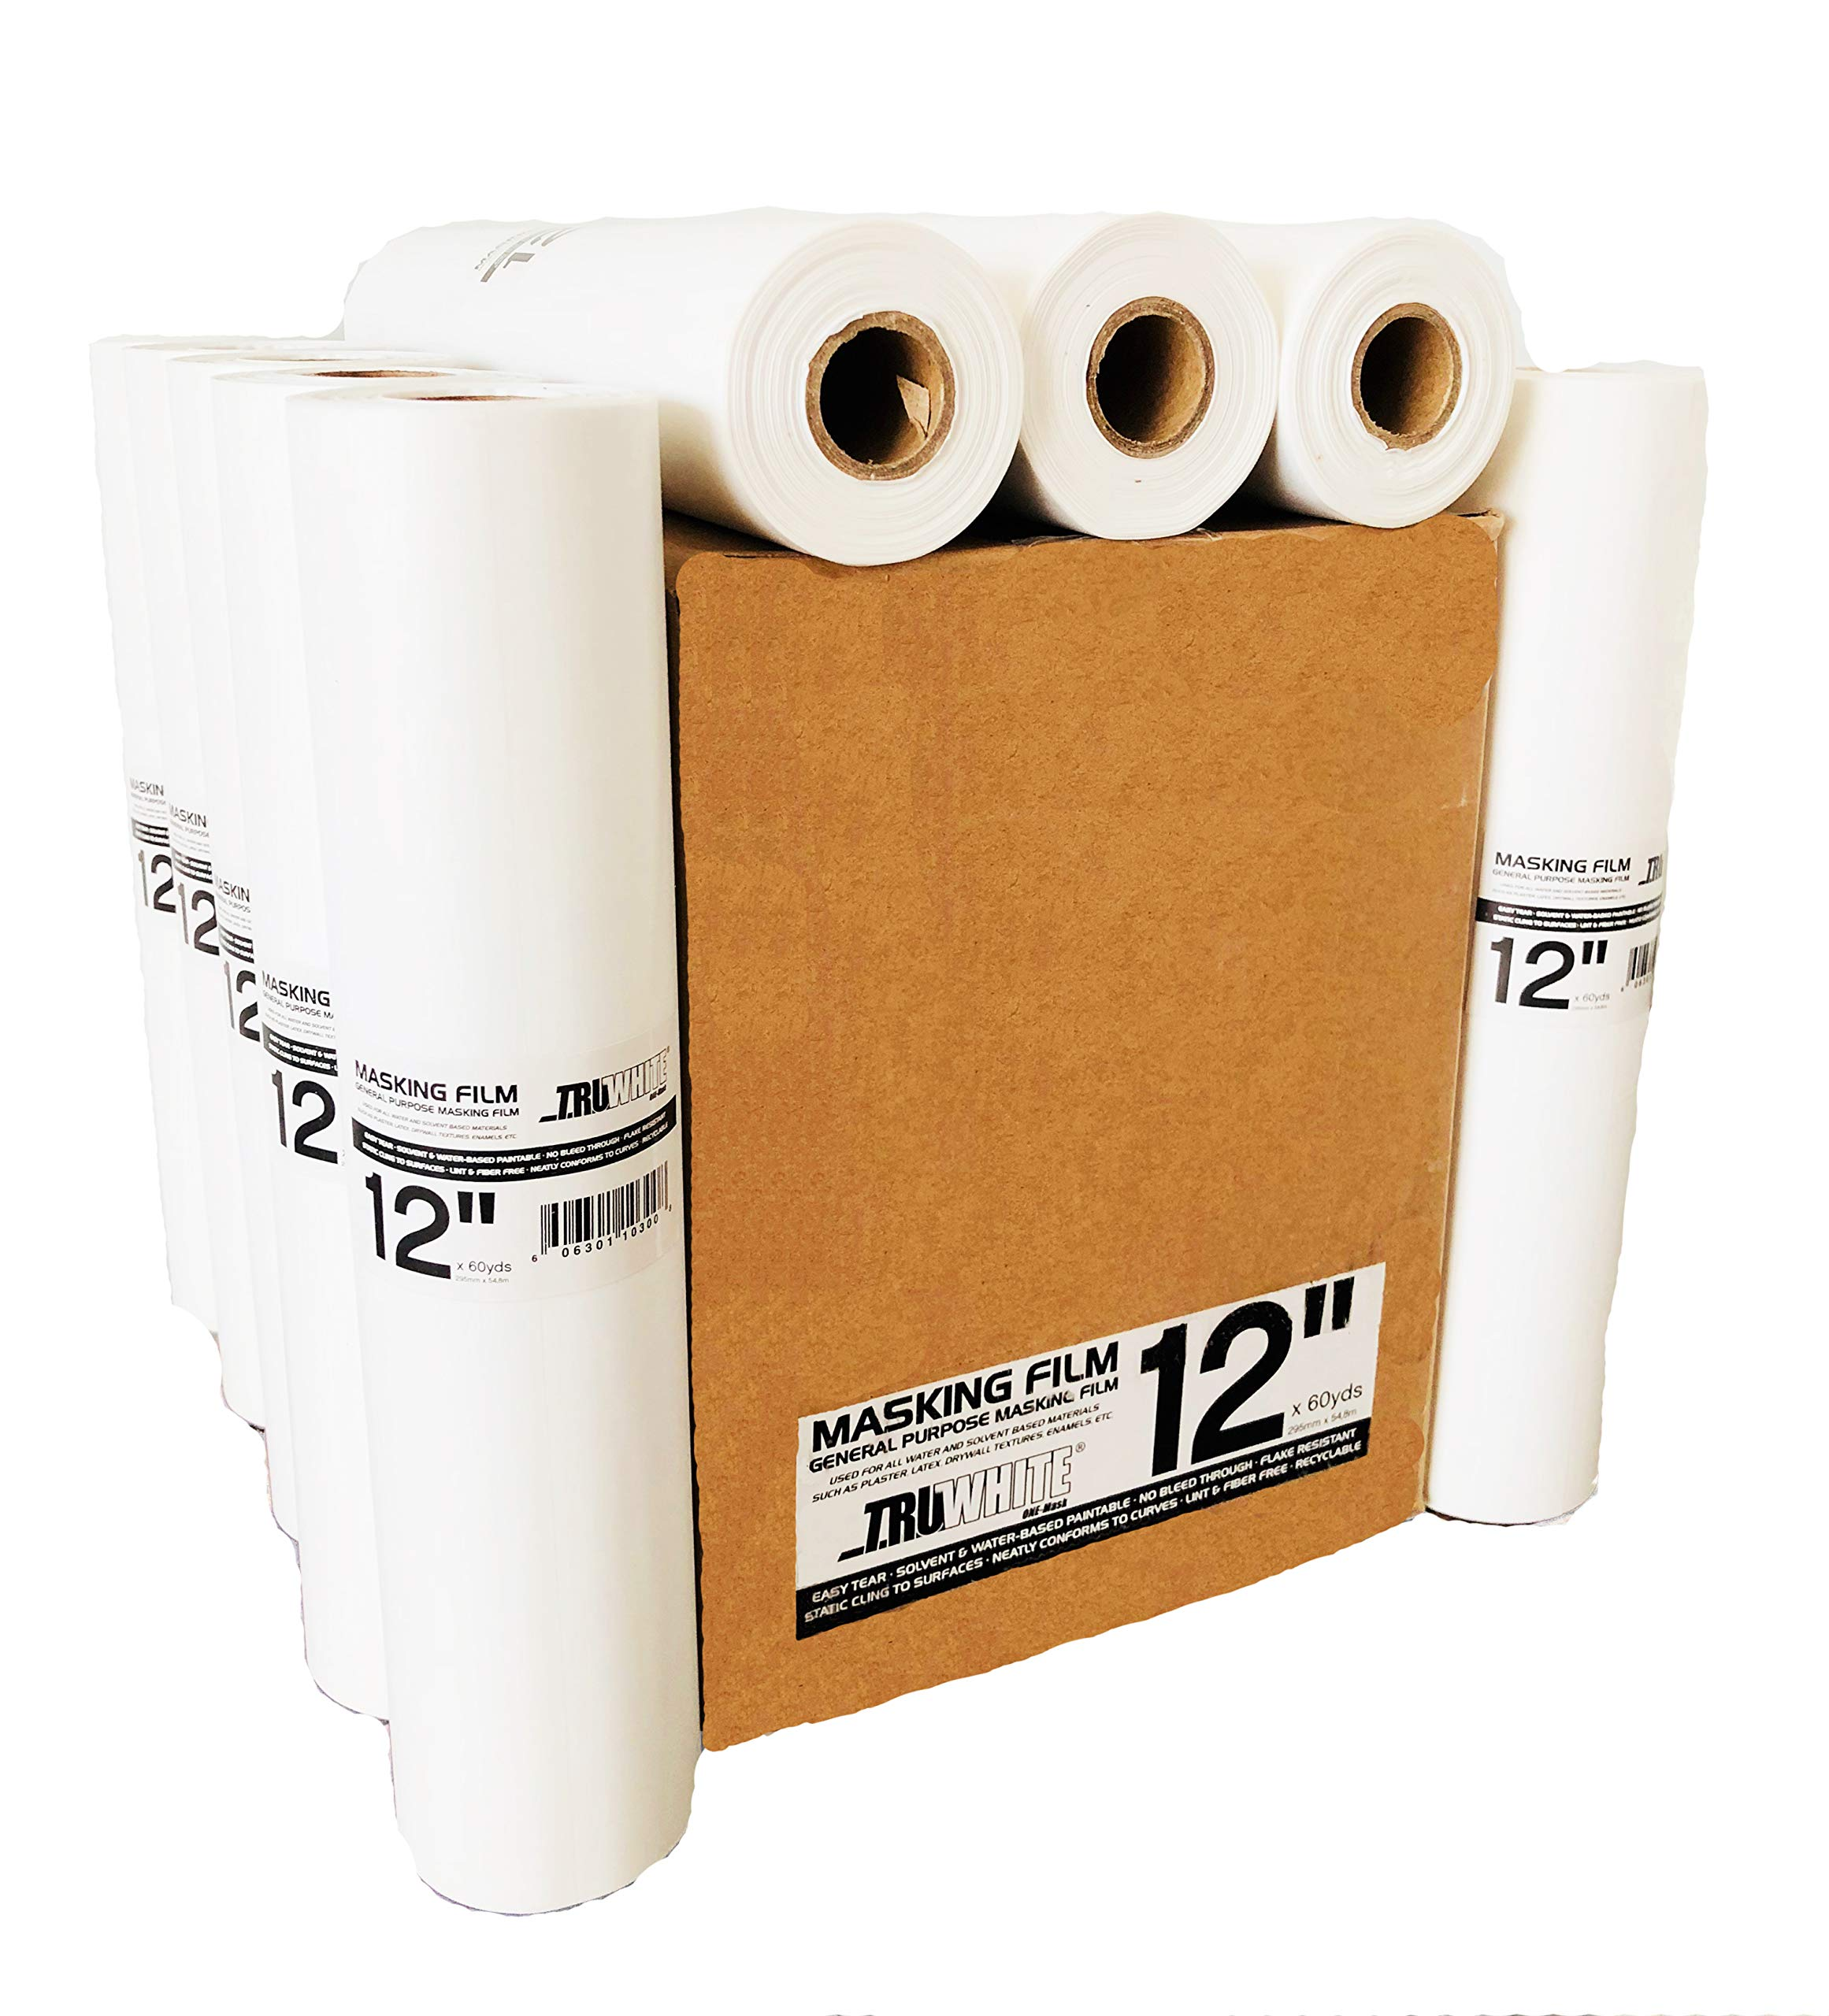 Reli. TruWhite Masking Paper Alternative (12 Rolls, Bulk) (12'' Inch x 180' feet) for Painting, Automotive - Protective Masking Film in Bulk by Reli.